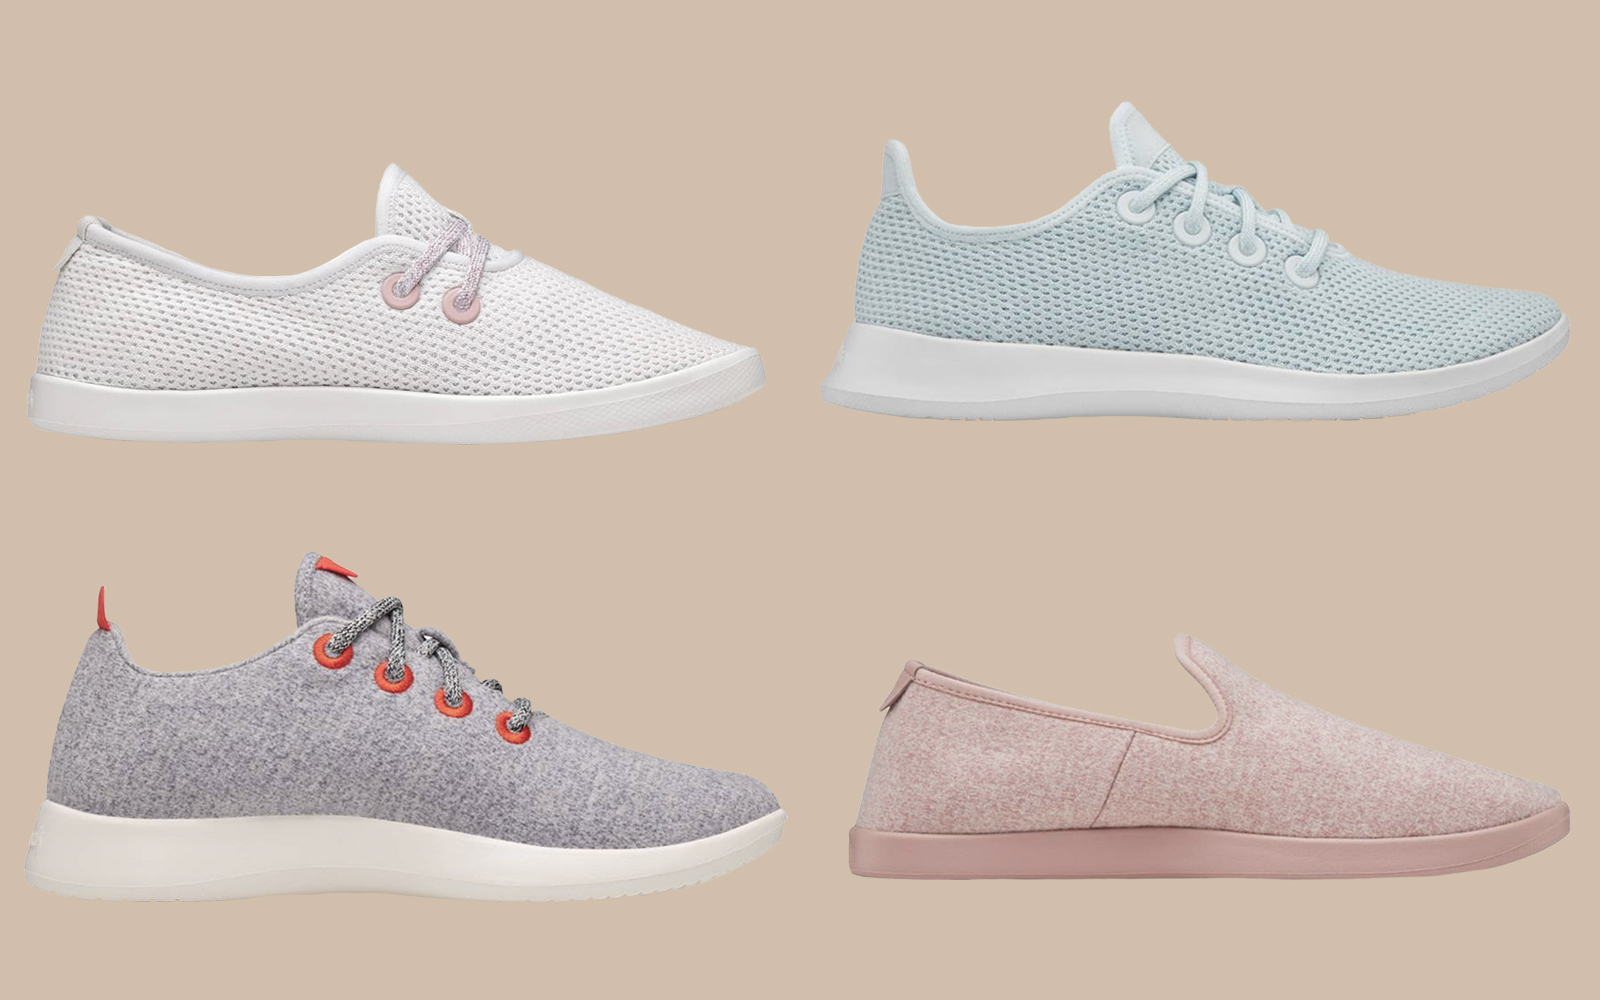 Allbirds Launched a Collection of Its Cult-favorite Comfy Sneakers at Nordstrom